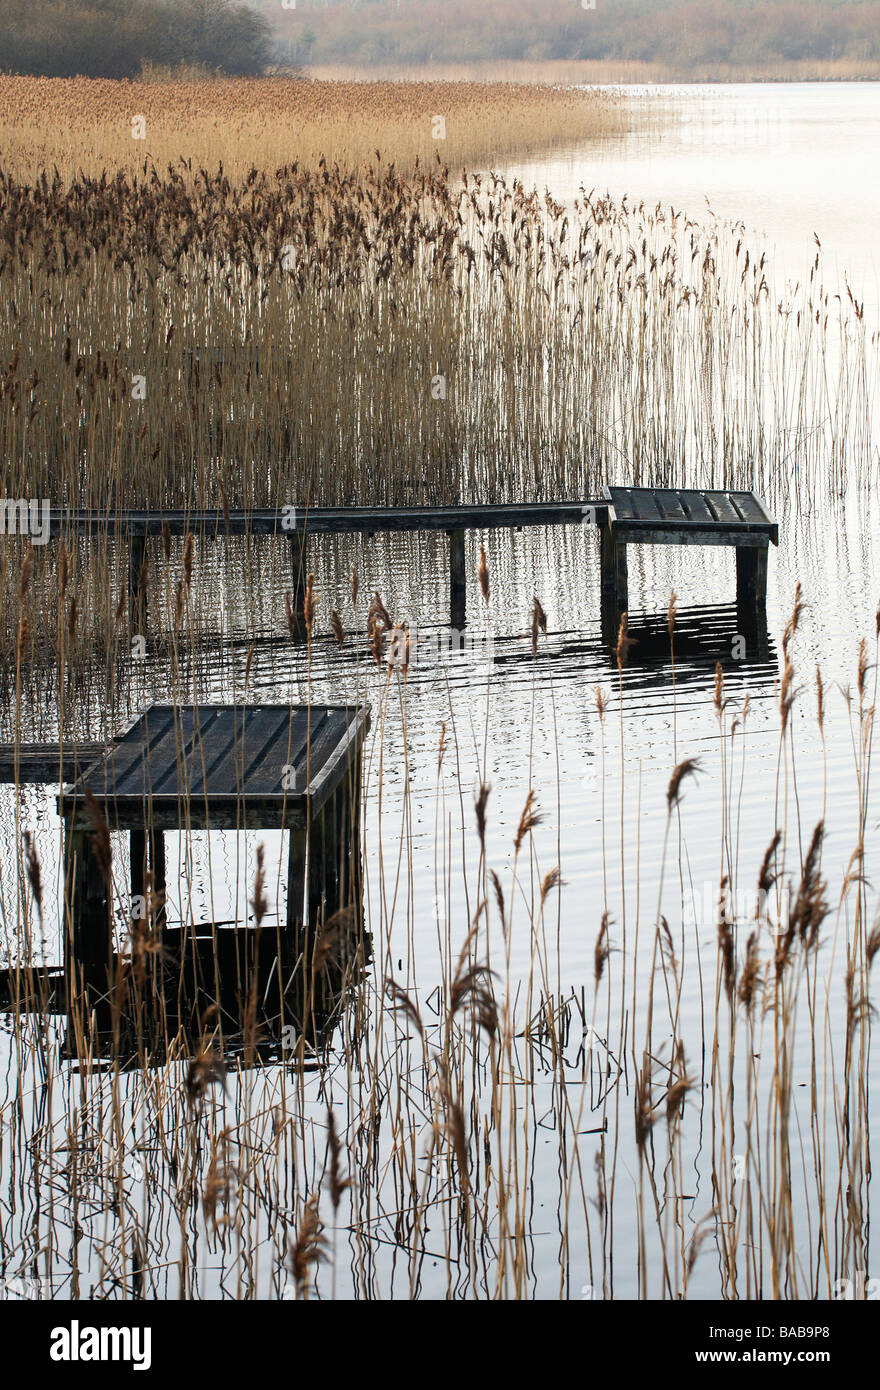 Fishing pontoon surrounded by Reeds at the edge of a lake County Fermanagh Northern Ireland - Stock Image